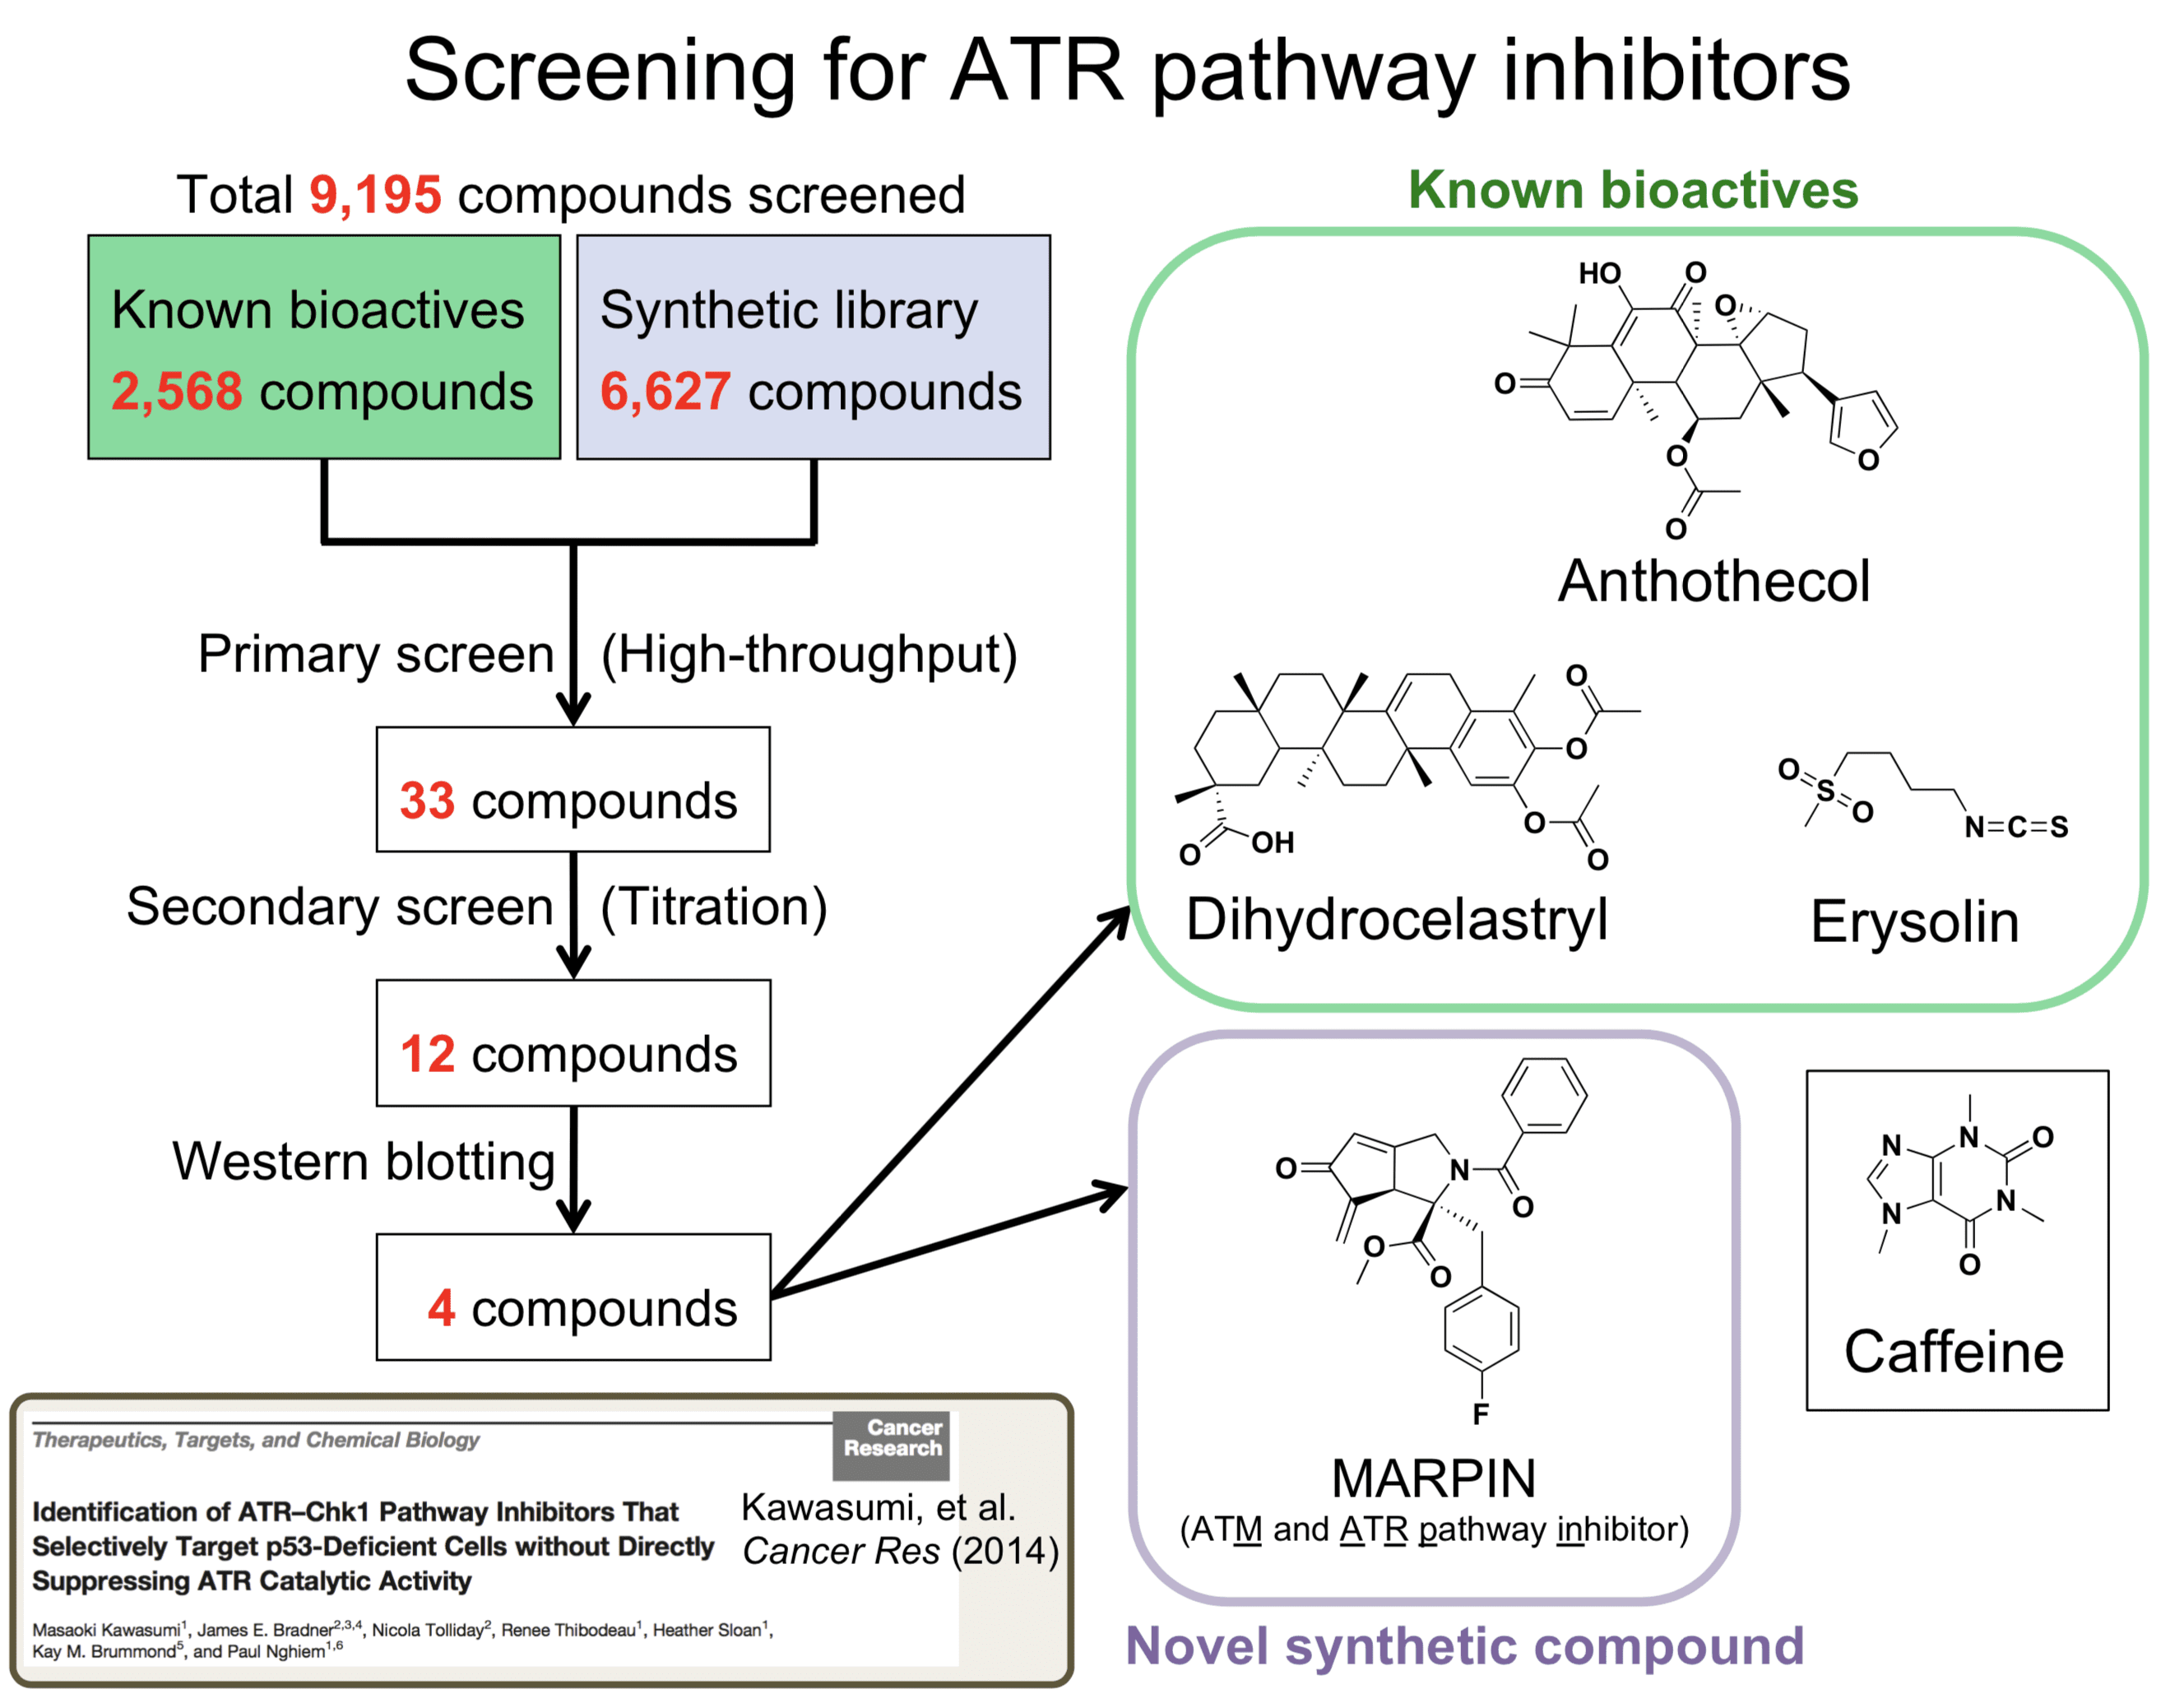 KawasumiLab-Research-02-ATRInhibitors-02-ScreeningForATRPathwayInhibitors